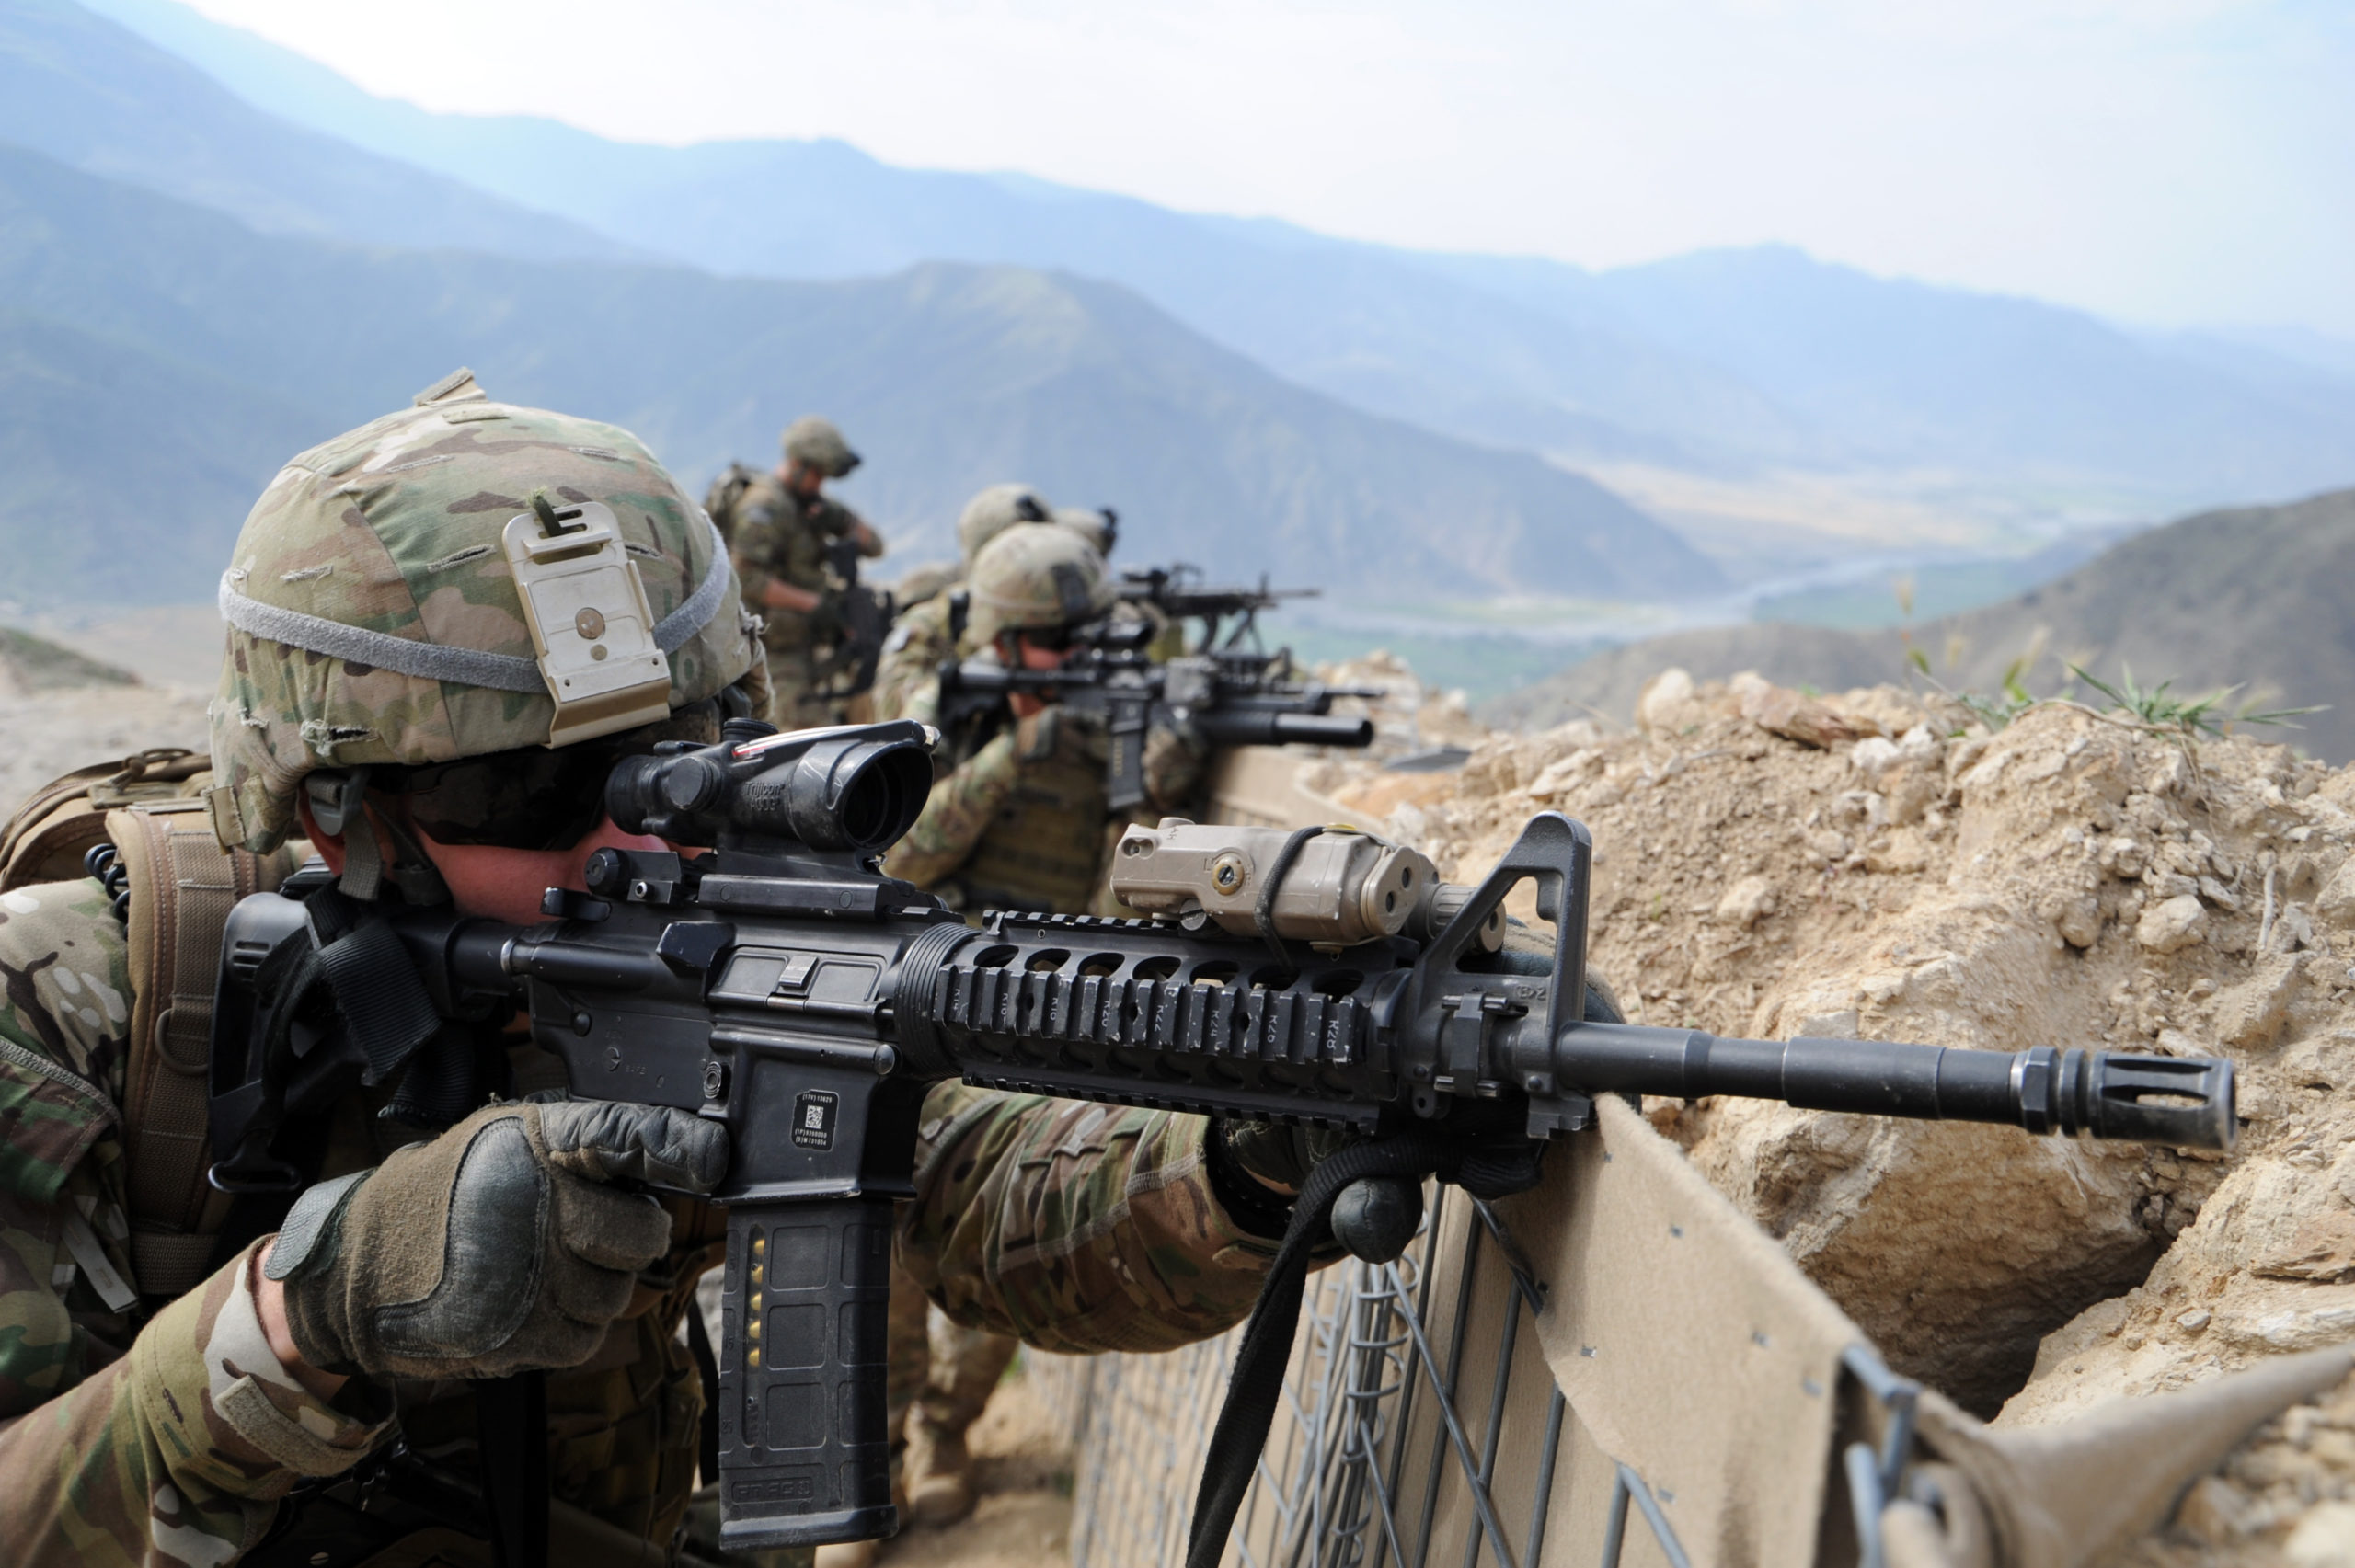 The Taliban Story: How winners took it all and shaped post-Taliban regime (Part 18)